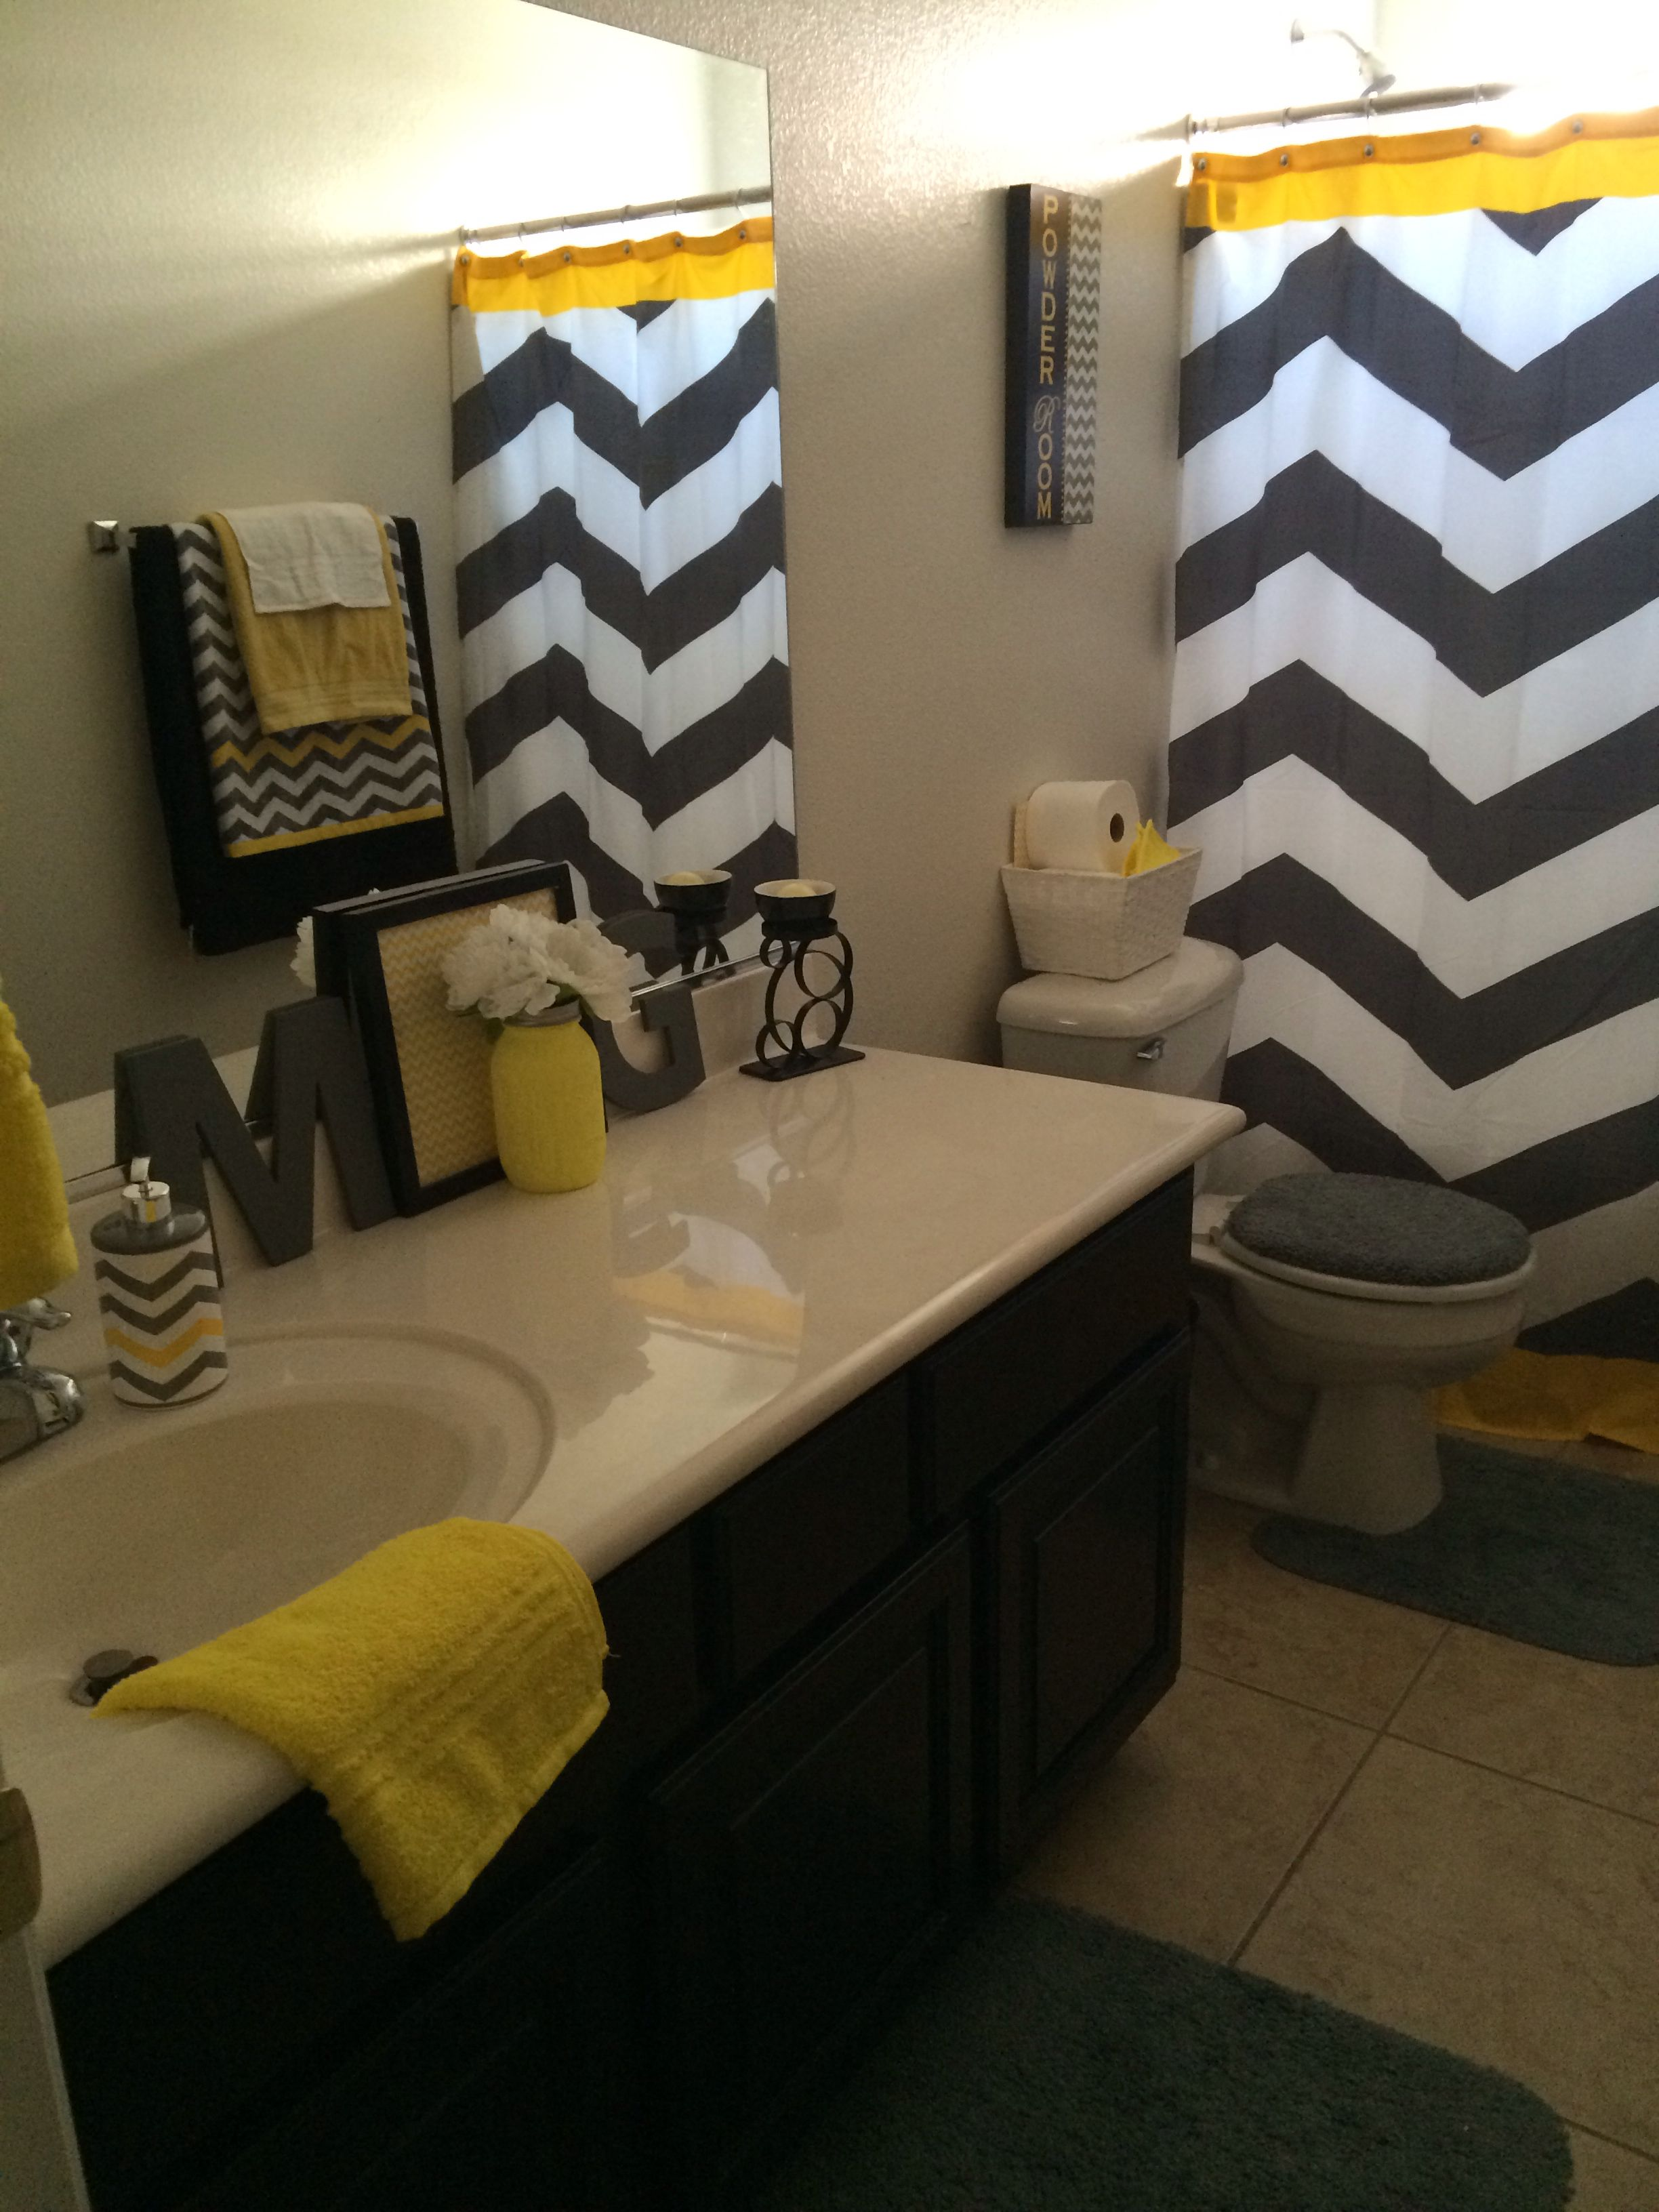 My New Cheerful Gender Neutral Bathroom Yellow Black Grey And White Yellow Bathroom Decor Gray Bathroom Decor Restroom Decor